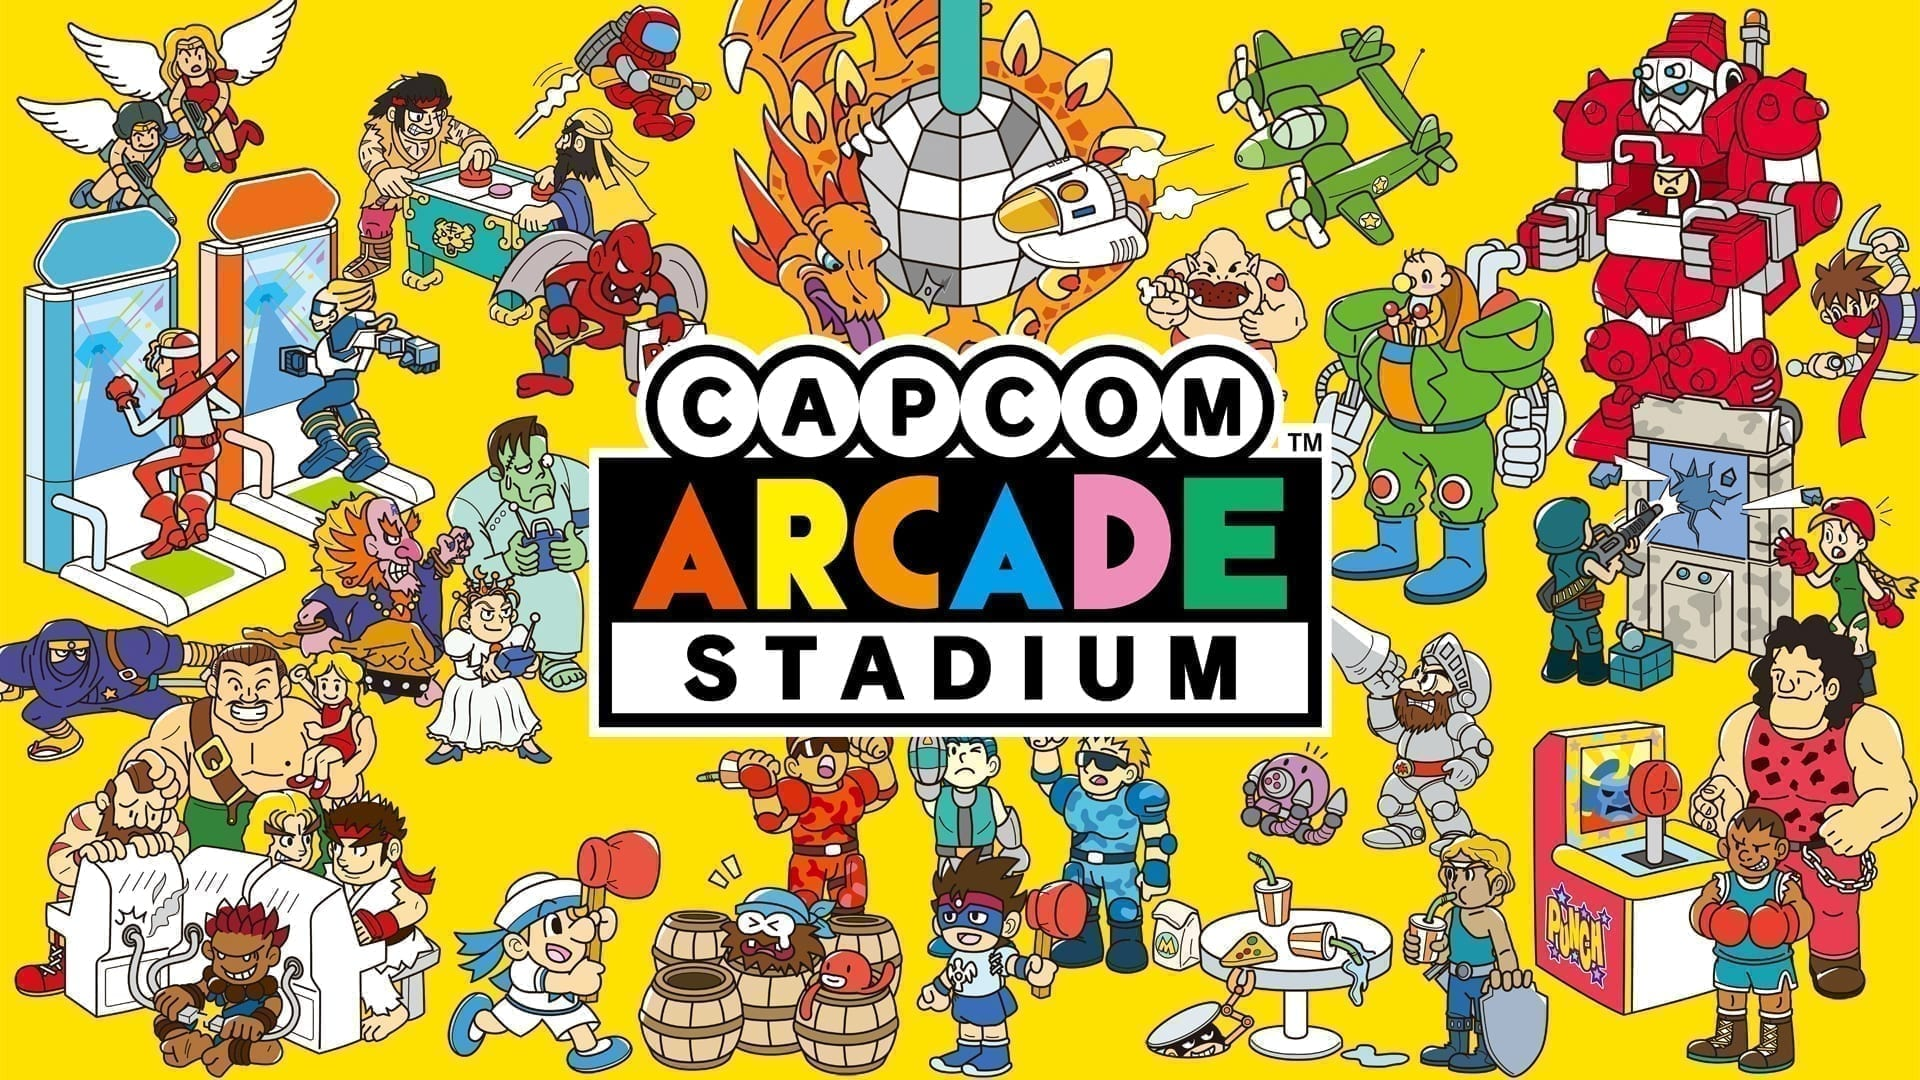 Capcom Arcade Stadium Consoles and PC